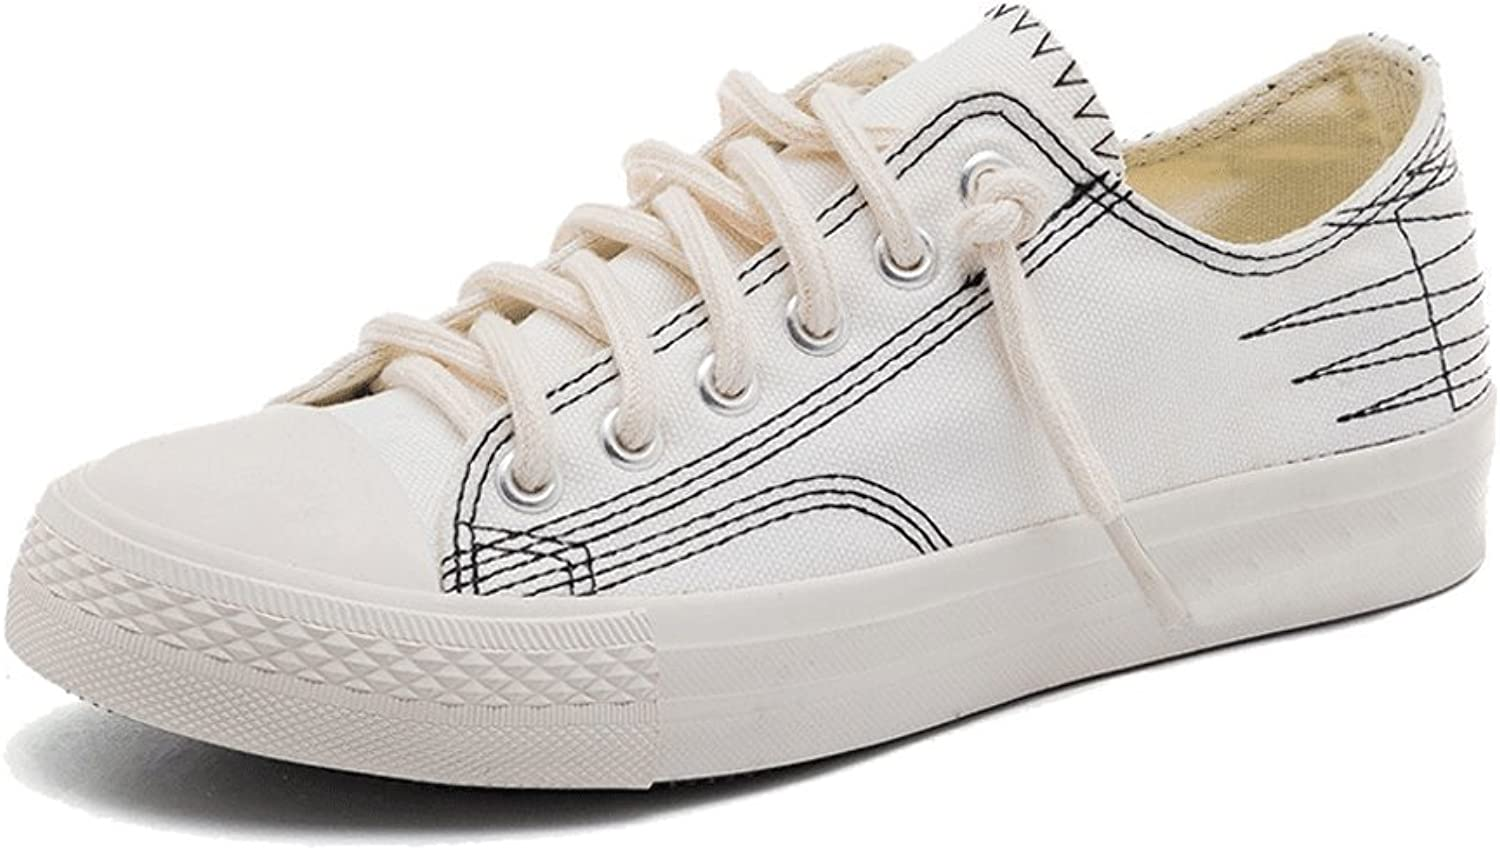 LIUXUEPING White shoes Female Wild Casual Spring and Summer The New Korean Version Student Canvas shoes (color   White, Size   40)